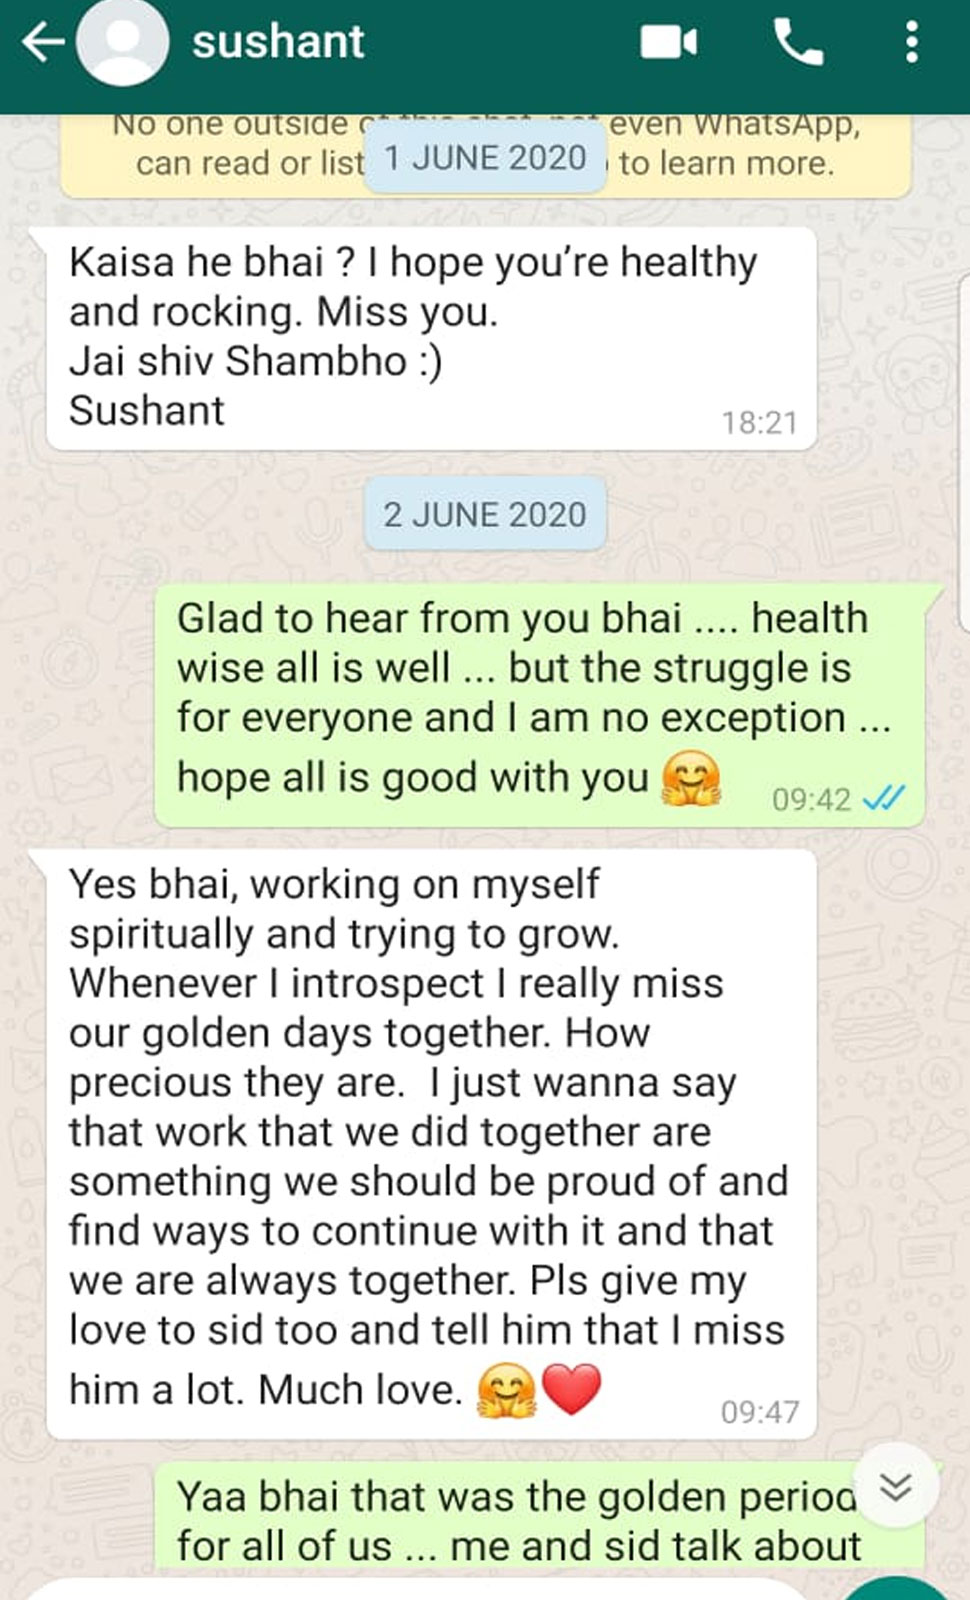 WhatsApp Chat between Sushant singh rajput and his friend Kushal Zhaveri